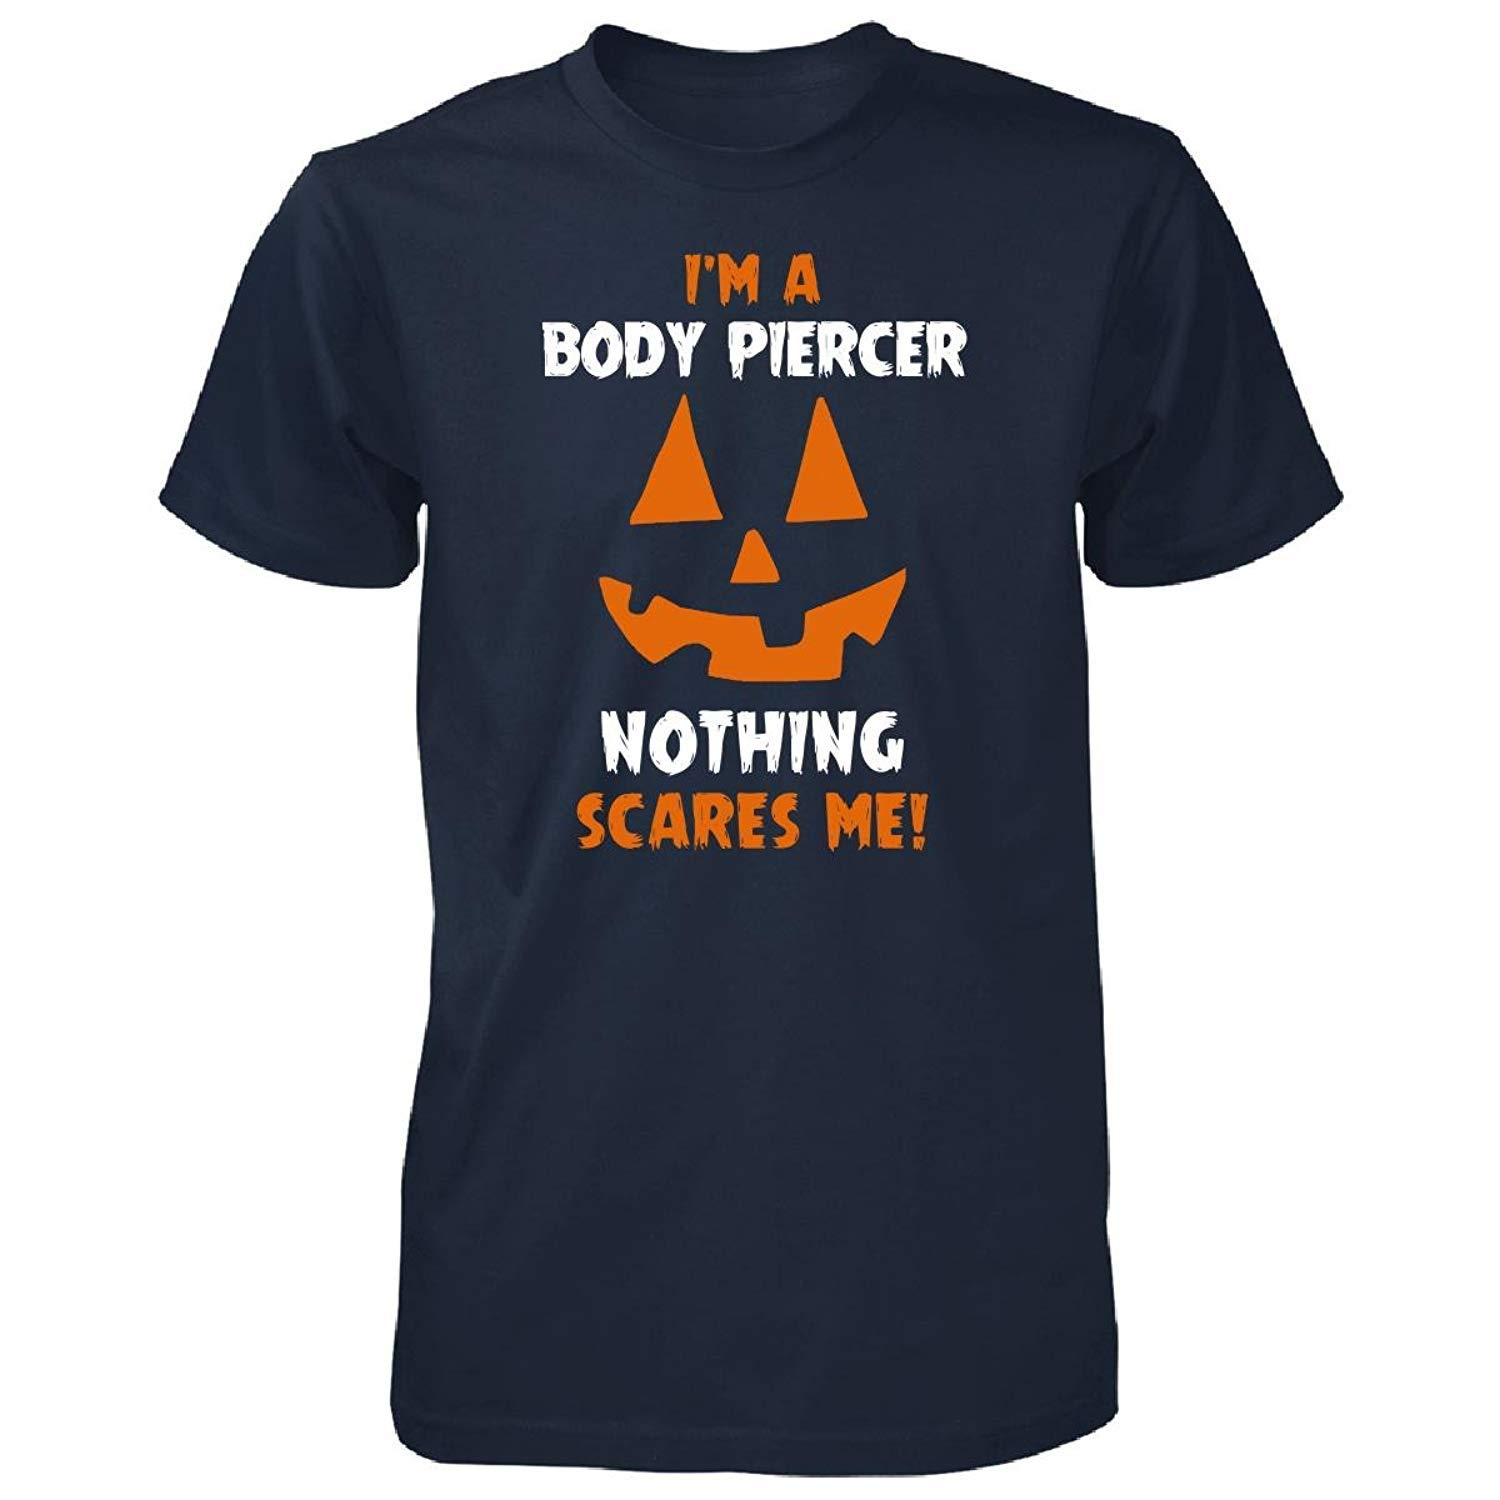 I'm A Body Piercer Nothing Scares Me Men Tshirt